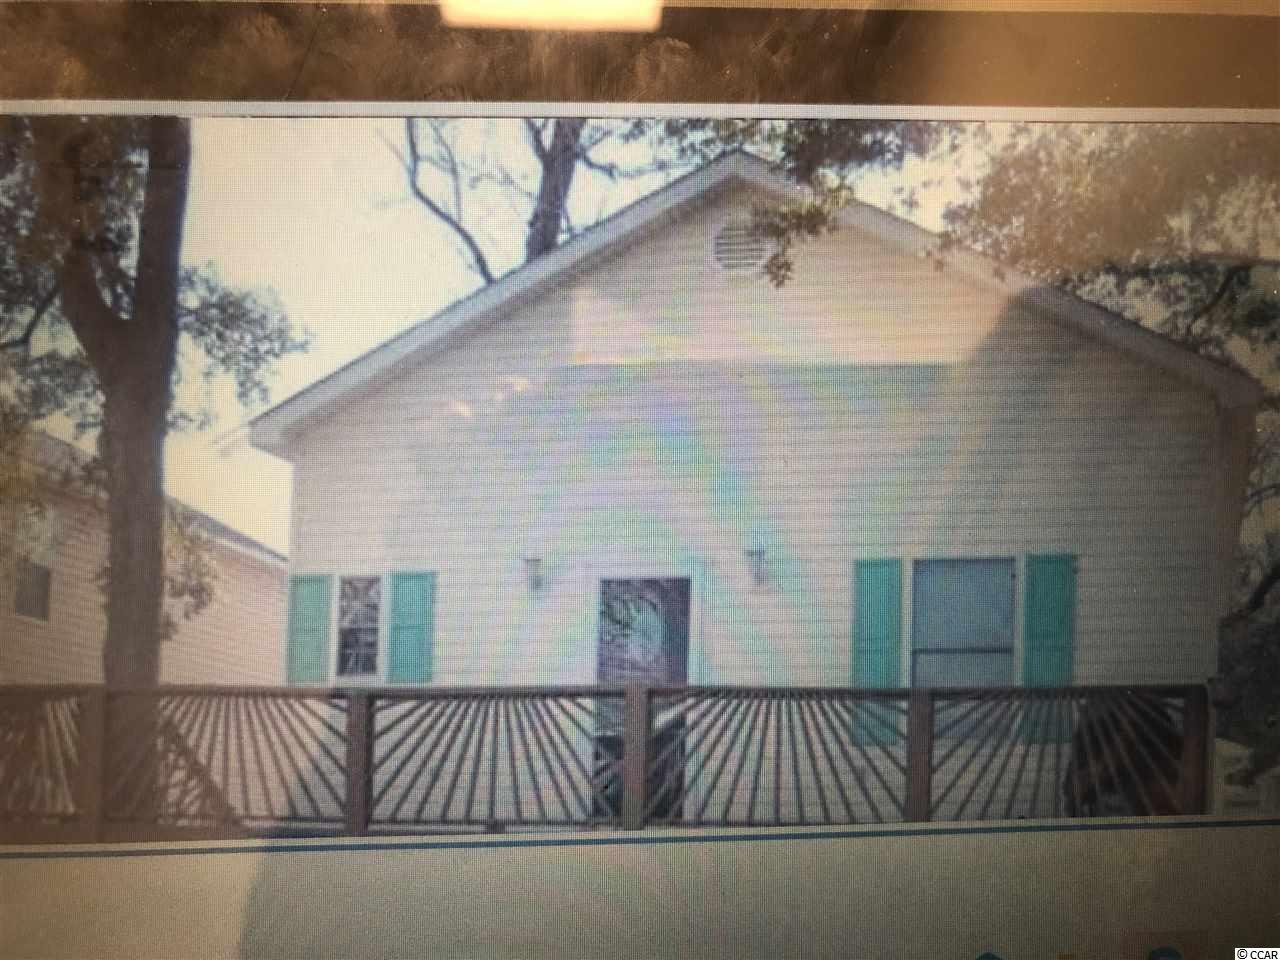 This 4BR/2.5 BA home is stick-built with one and a half stories, plus large crawl space.  Located within the prestigious and highly sought after Ocean Lakes Campground, named 2017 Best Mega Park of the Year!!  There are 2 bedrooms and 1.5 baths on the first floor; and 2 bedrooms and 1 bath on the second floor.  Vaulted open floor plan on first level to include living room, large eat-in kitchen, and breakfast bar, along with bedrooms.  Second floor has slanted ceiling with 2 twin beds and 1 full bed.  Second floor bath has shower only.  First floor bath has tub and shower surround.  Both bedrooms on first level have large closets, plus there is under-stair storage.  The home comes fully furnished, with both bedrooms on first level having full beds.  Living room has fold-out sofa, two chairs, flat screen TV, 2 bar stools and there is a small dinette set in the kitchen.  Kitchen and baths have vinyl flooring; remainder of home is carpeted.  Kitchen has white cabinets, refrigerator, smooth-top stove, built-in microwave, and dishwasher.  There are ceiling fans in the living room, and both bedrooms downstairs.  There is a large wooden, front porch, outdoor shower, and storage shed.  Small backyard, driveway accommodates two cars.  HVAC replaced approximately 2 years ago.  There are no HOA fees however there is an annual lease which covers your basic cable TV, garbage removal, security and access to all pools, water-park and all amenities that Ocean Lakes has to offer. Don't miss this opportunity to own a home along a pristine part of the beach. Easy golf cart access to shopping, restaurants, activities, and so much more.   Ocean Lakes is a 310 acre ocean front complex with 24 hour security, nearly a mile of oceanfront, Outdoor Pool, Sandy Harbor Water Park, Sandy Mart, Meet n' Eat. Come play Basketball, Shuffle Board, Horse Shoes, enjoy their award-winning Recreation program. The gated campground also features an RV Center with a store and repair technicians; Golf Car Sal